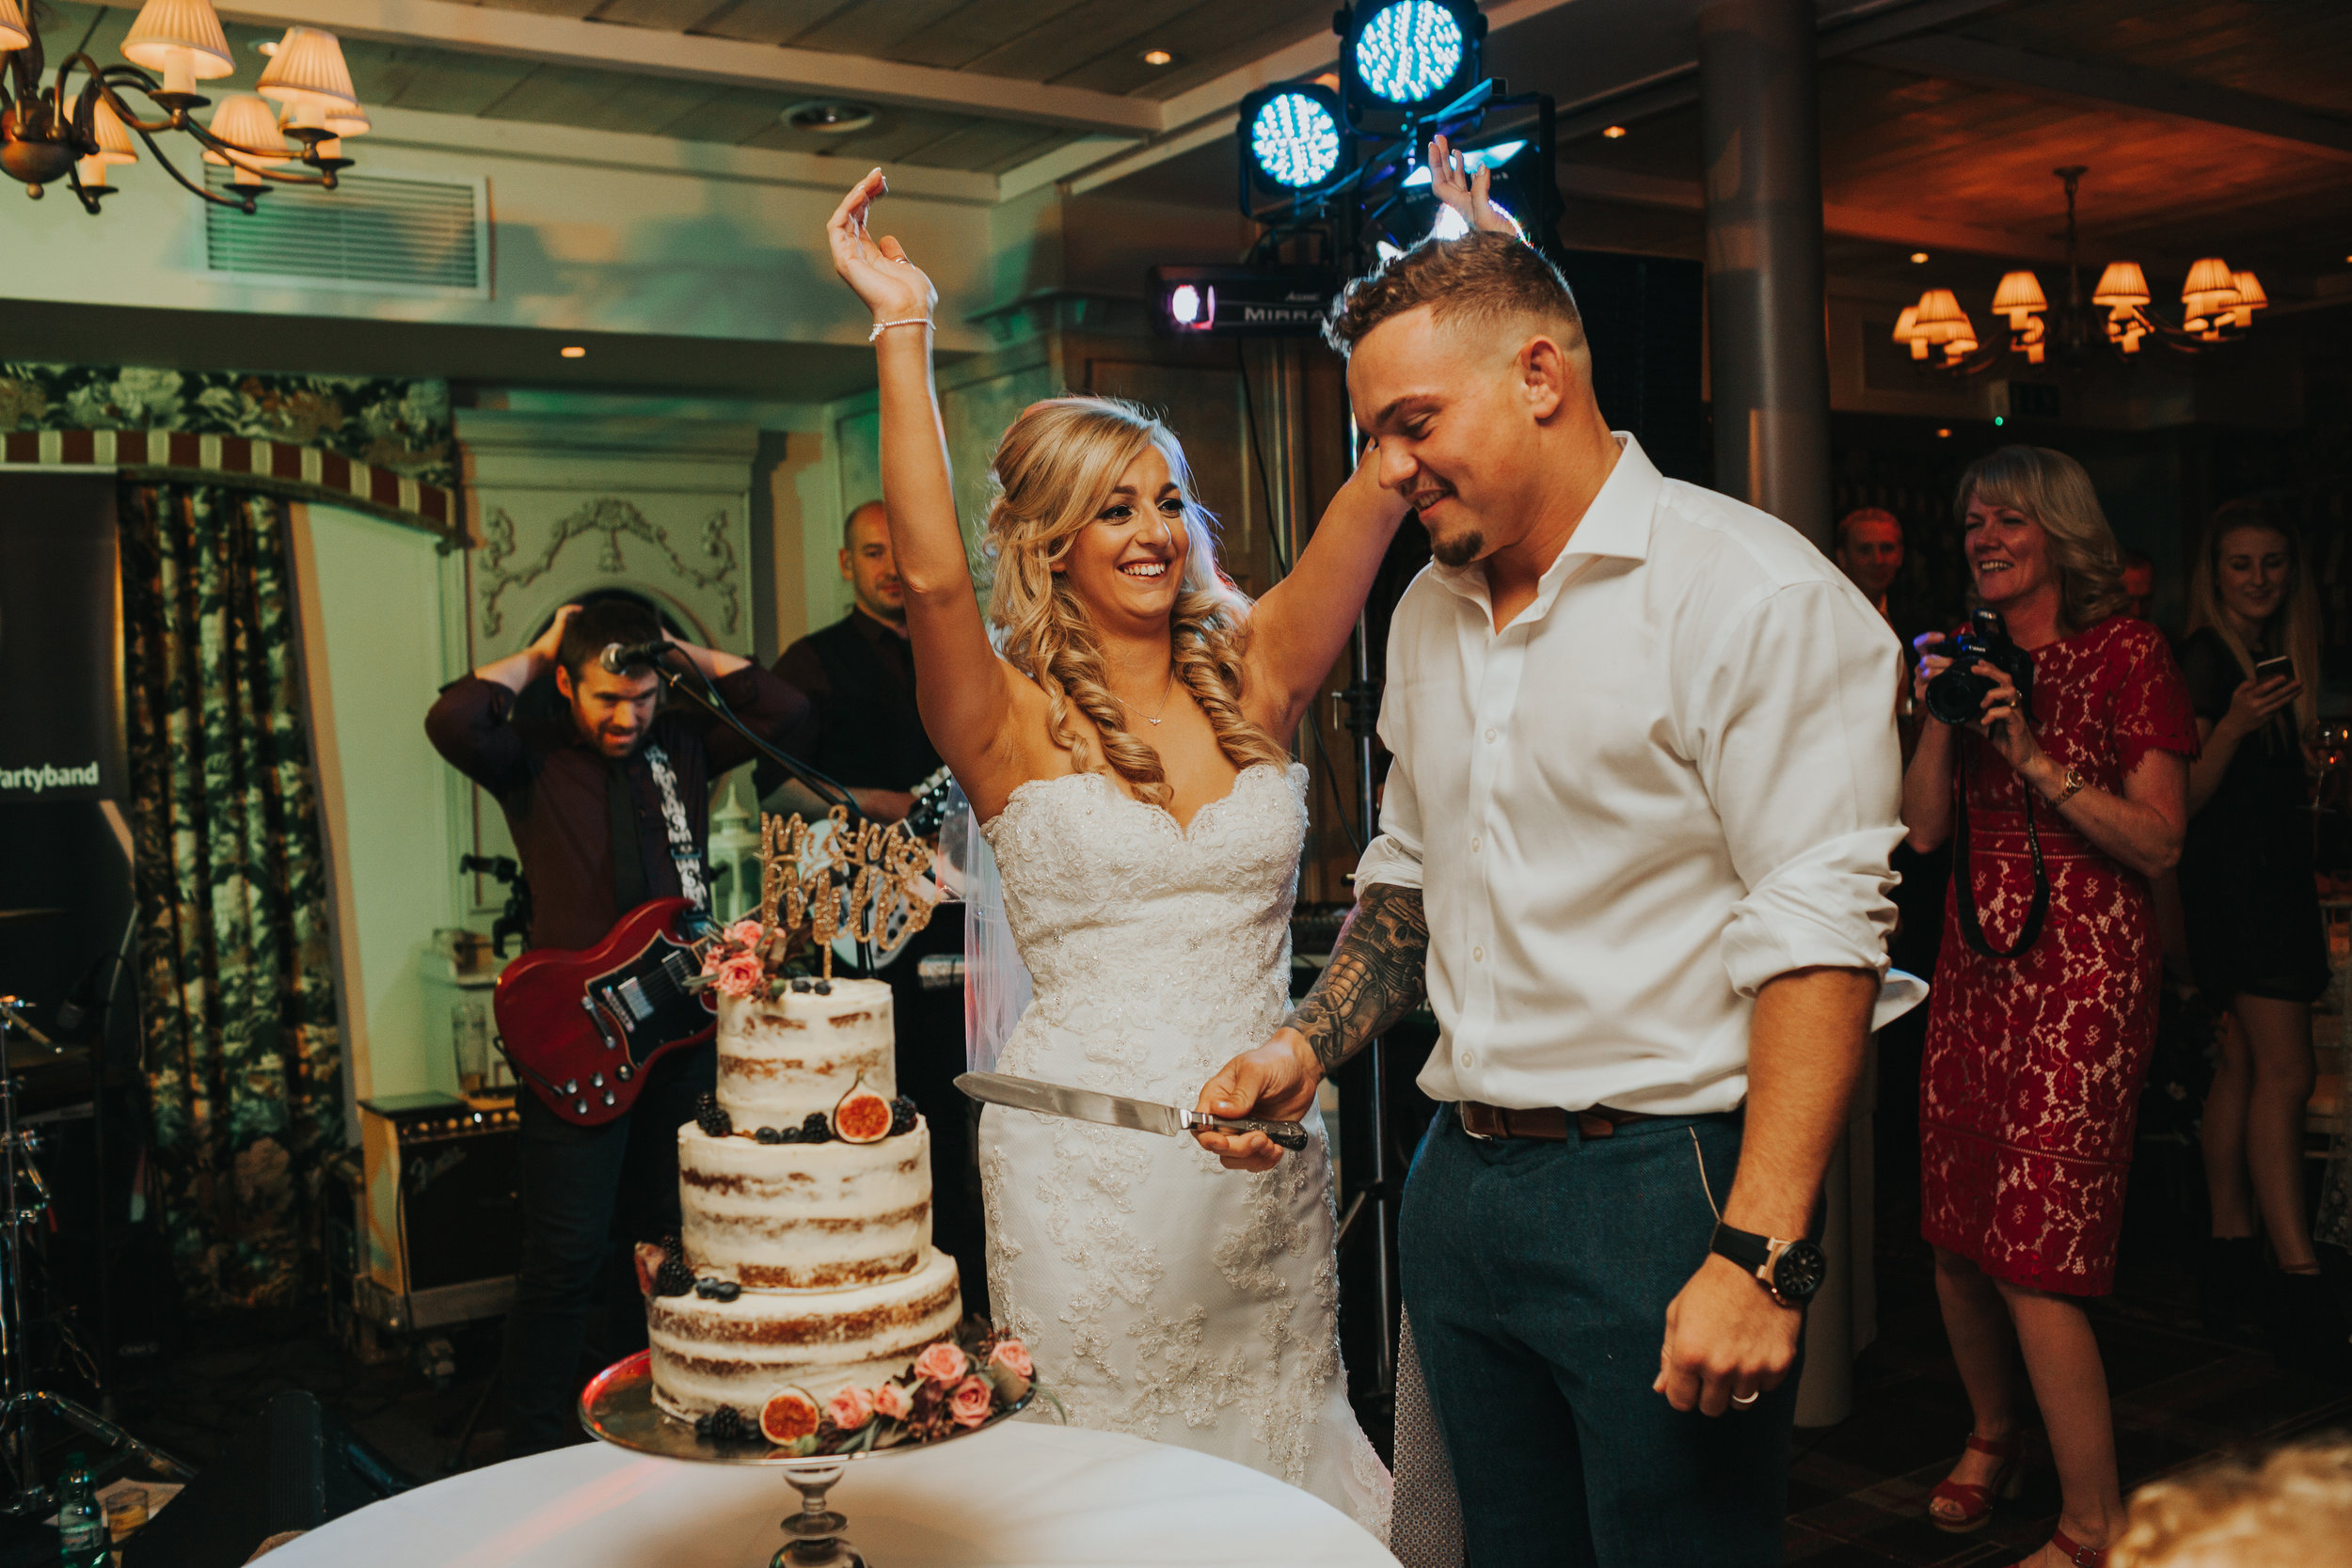 Bride celebrates as they cut the cake.